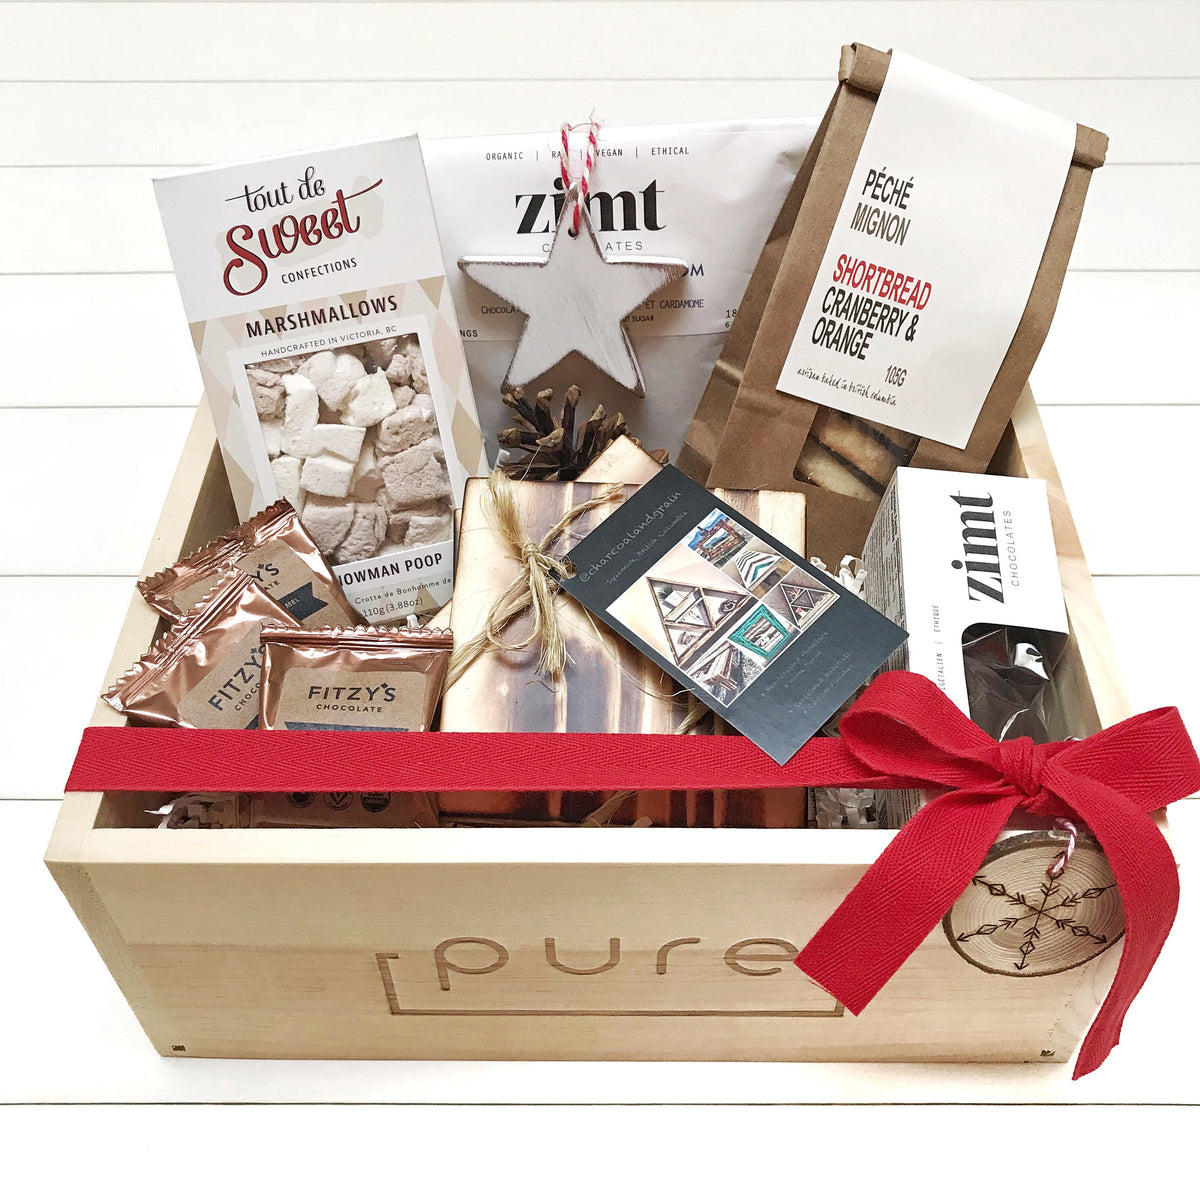 Squamish Christmas & Holiday Gift box basket for a family including treats for Santa